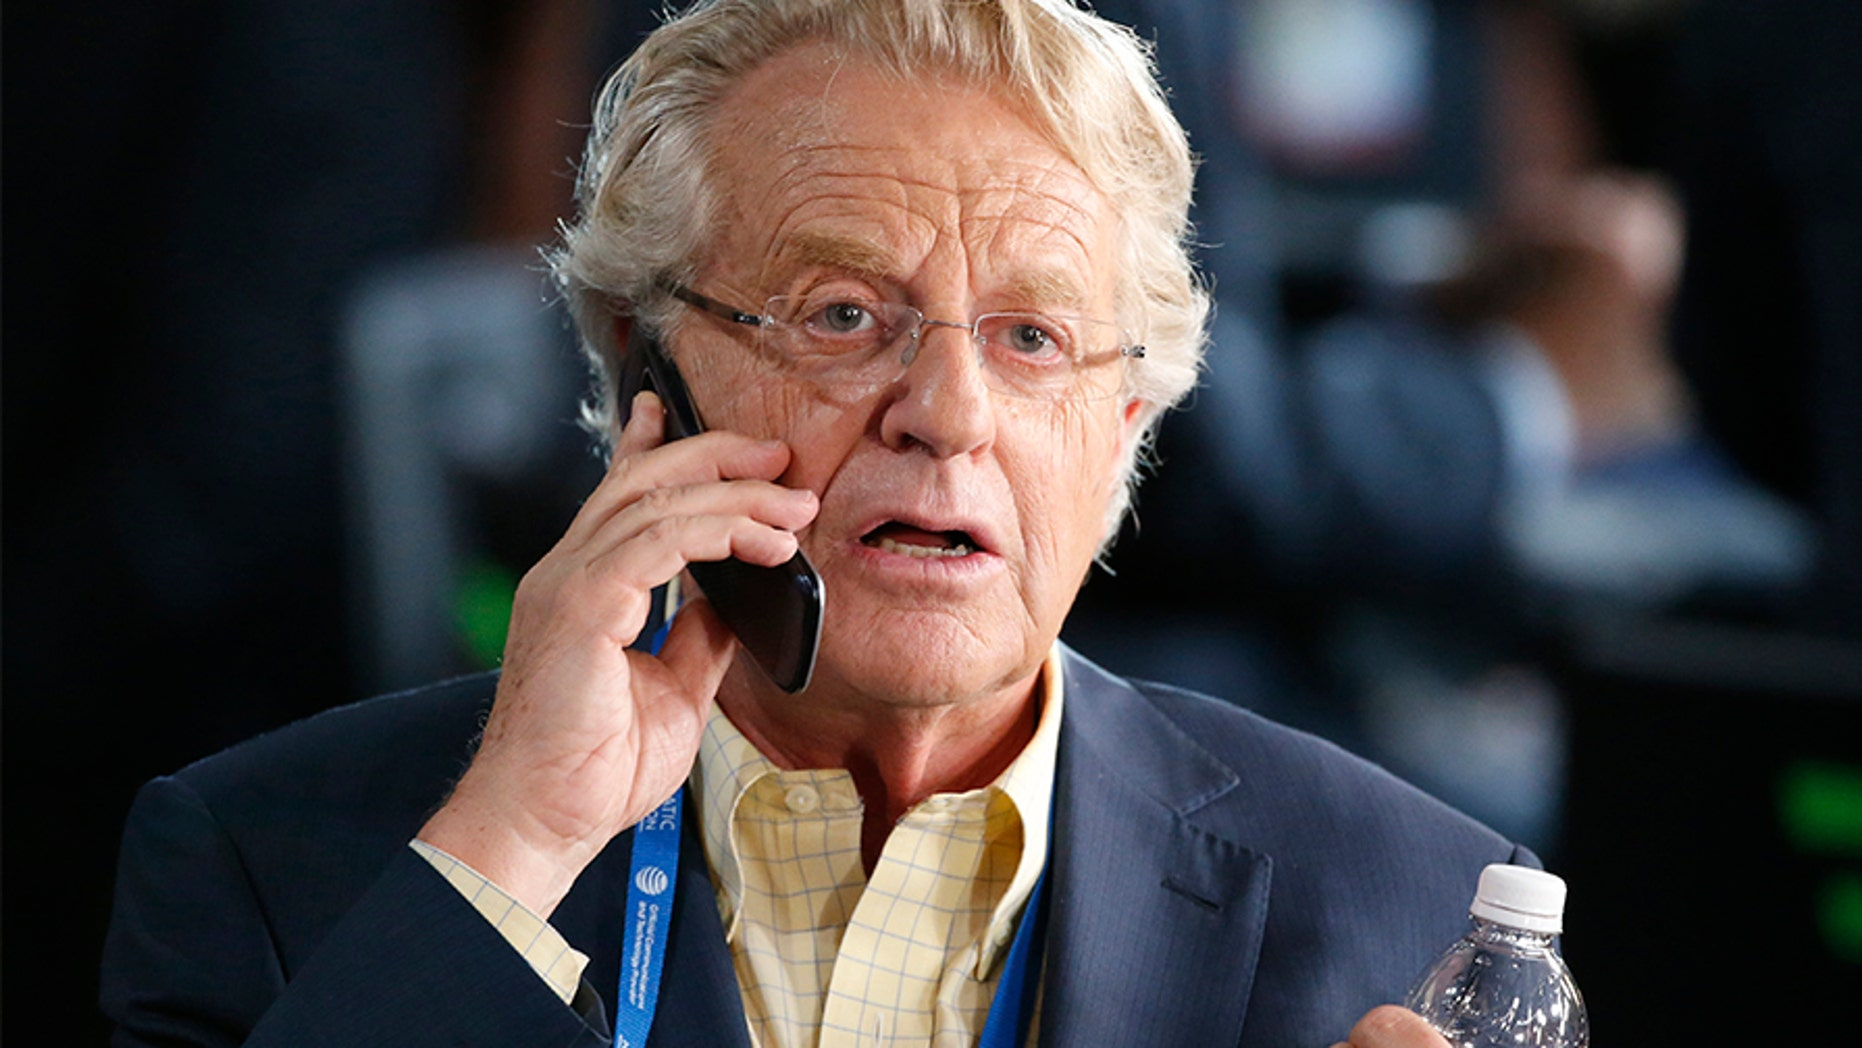 Television personality Jerry Springer at the Democratic National Convention in Philadelphia, Pennsylvania, U.S. July 25, 2016. REUTERS/Lucy Nicholson - HT1EC7P1MSV9G